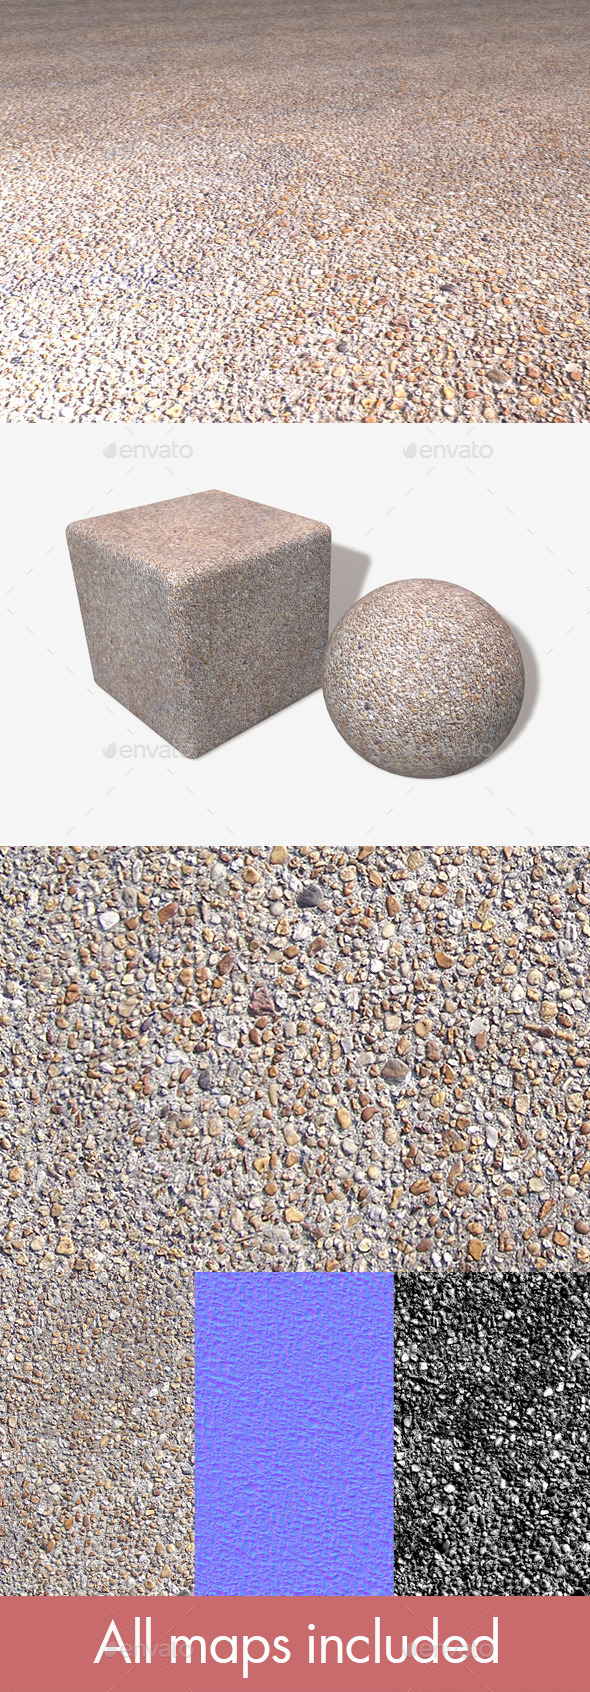 Gravel Pavement Seamless Texture - 3DOcean Item for Sale